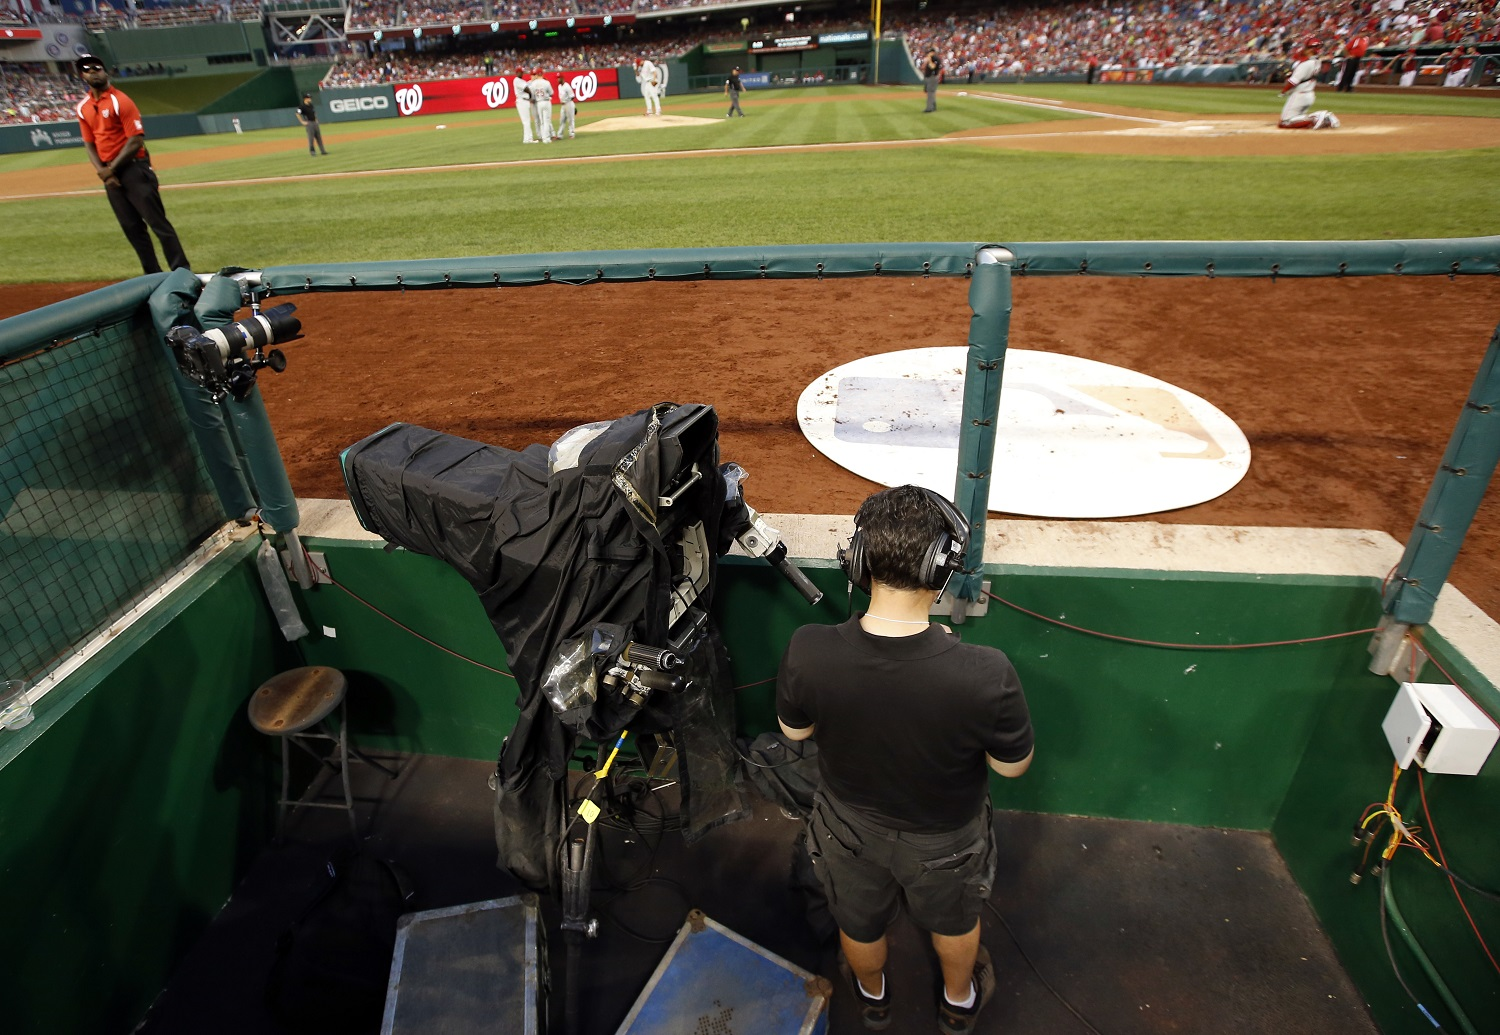 Ramifications on and off field for Nats from latest MASN ruling